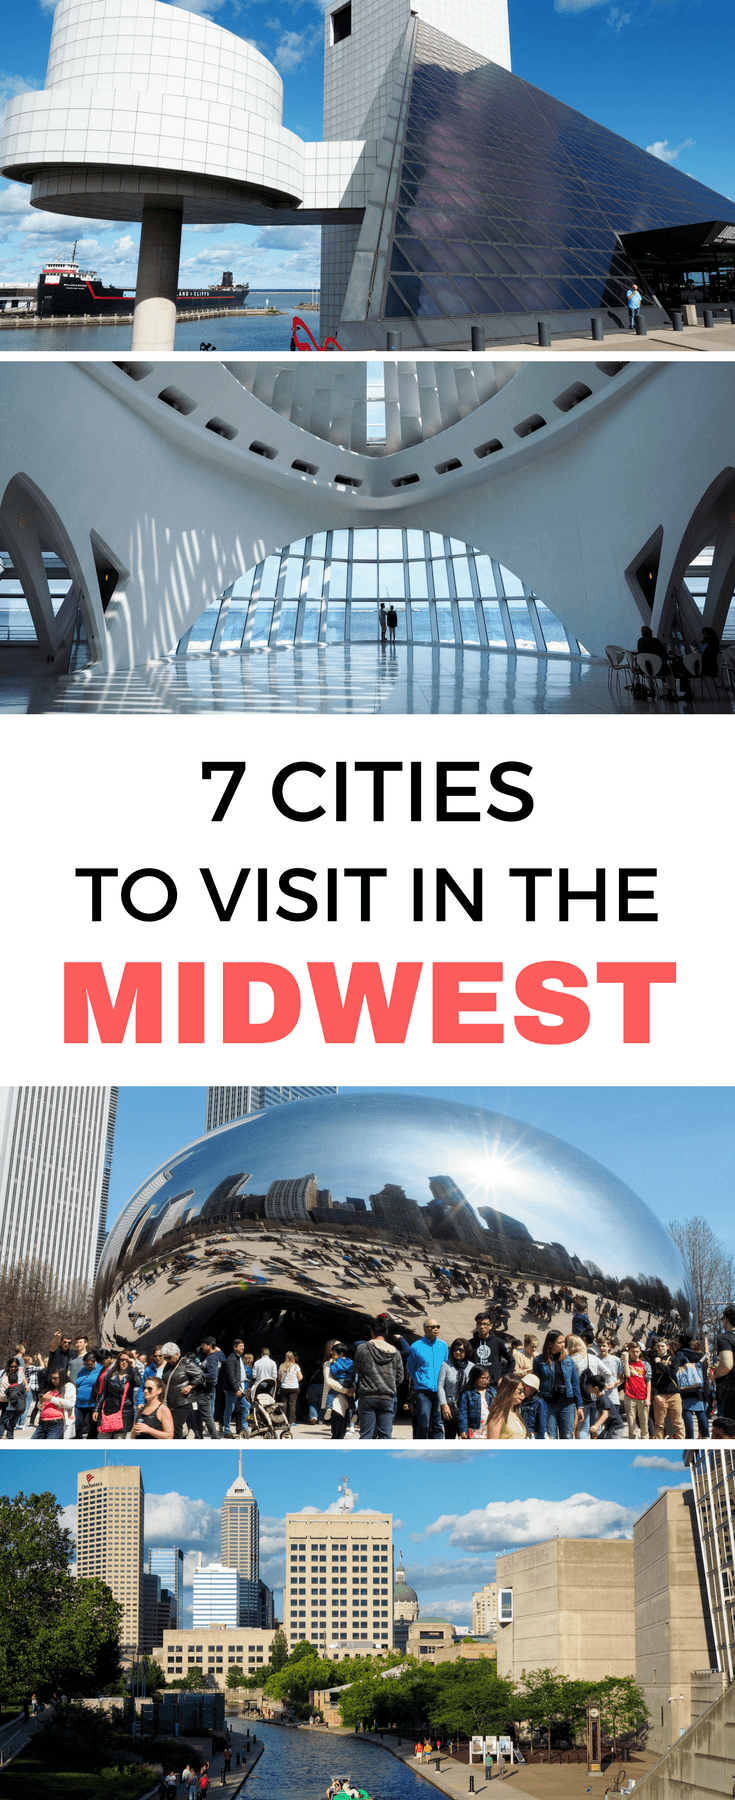 7 cities to visit in the American Midwest | Midwestern cities | #MyMidwest | Cleveland | Cincinnati | Indianapolis | Milwaukee | Chicago | Traverse City | Rapid City